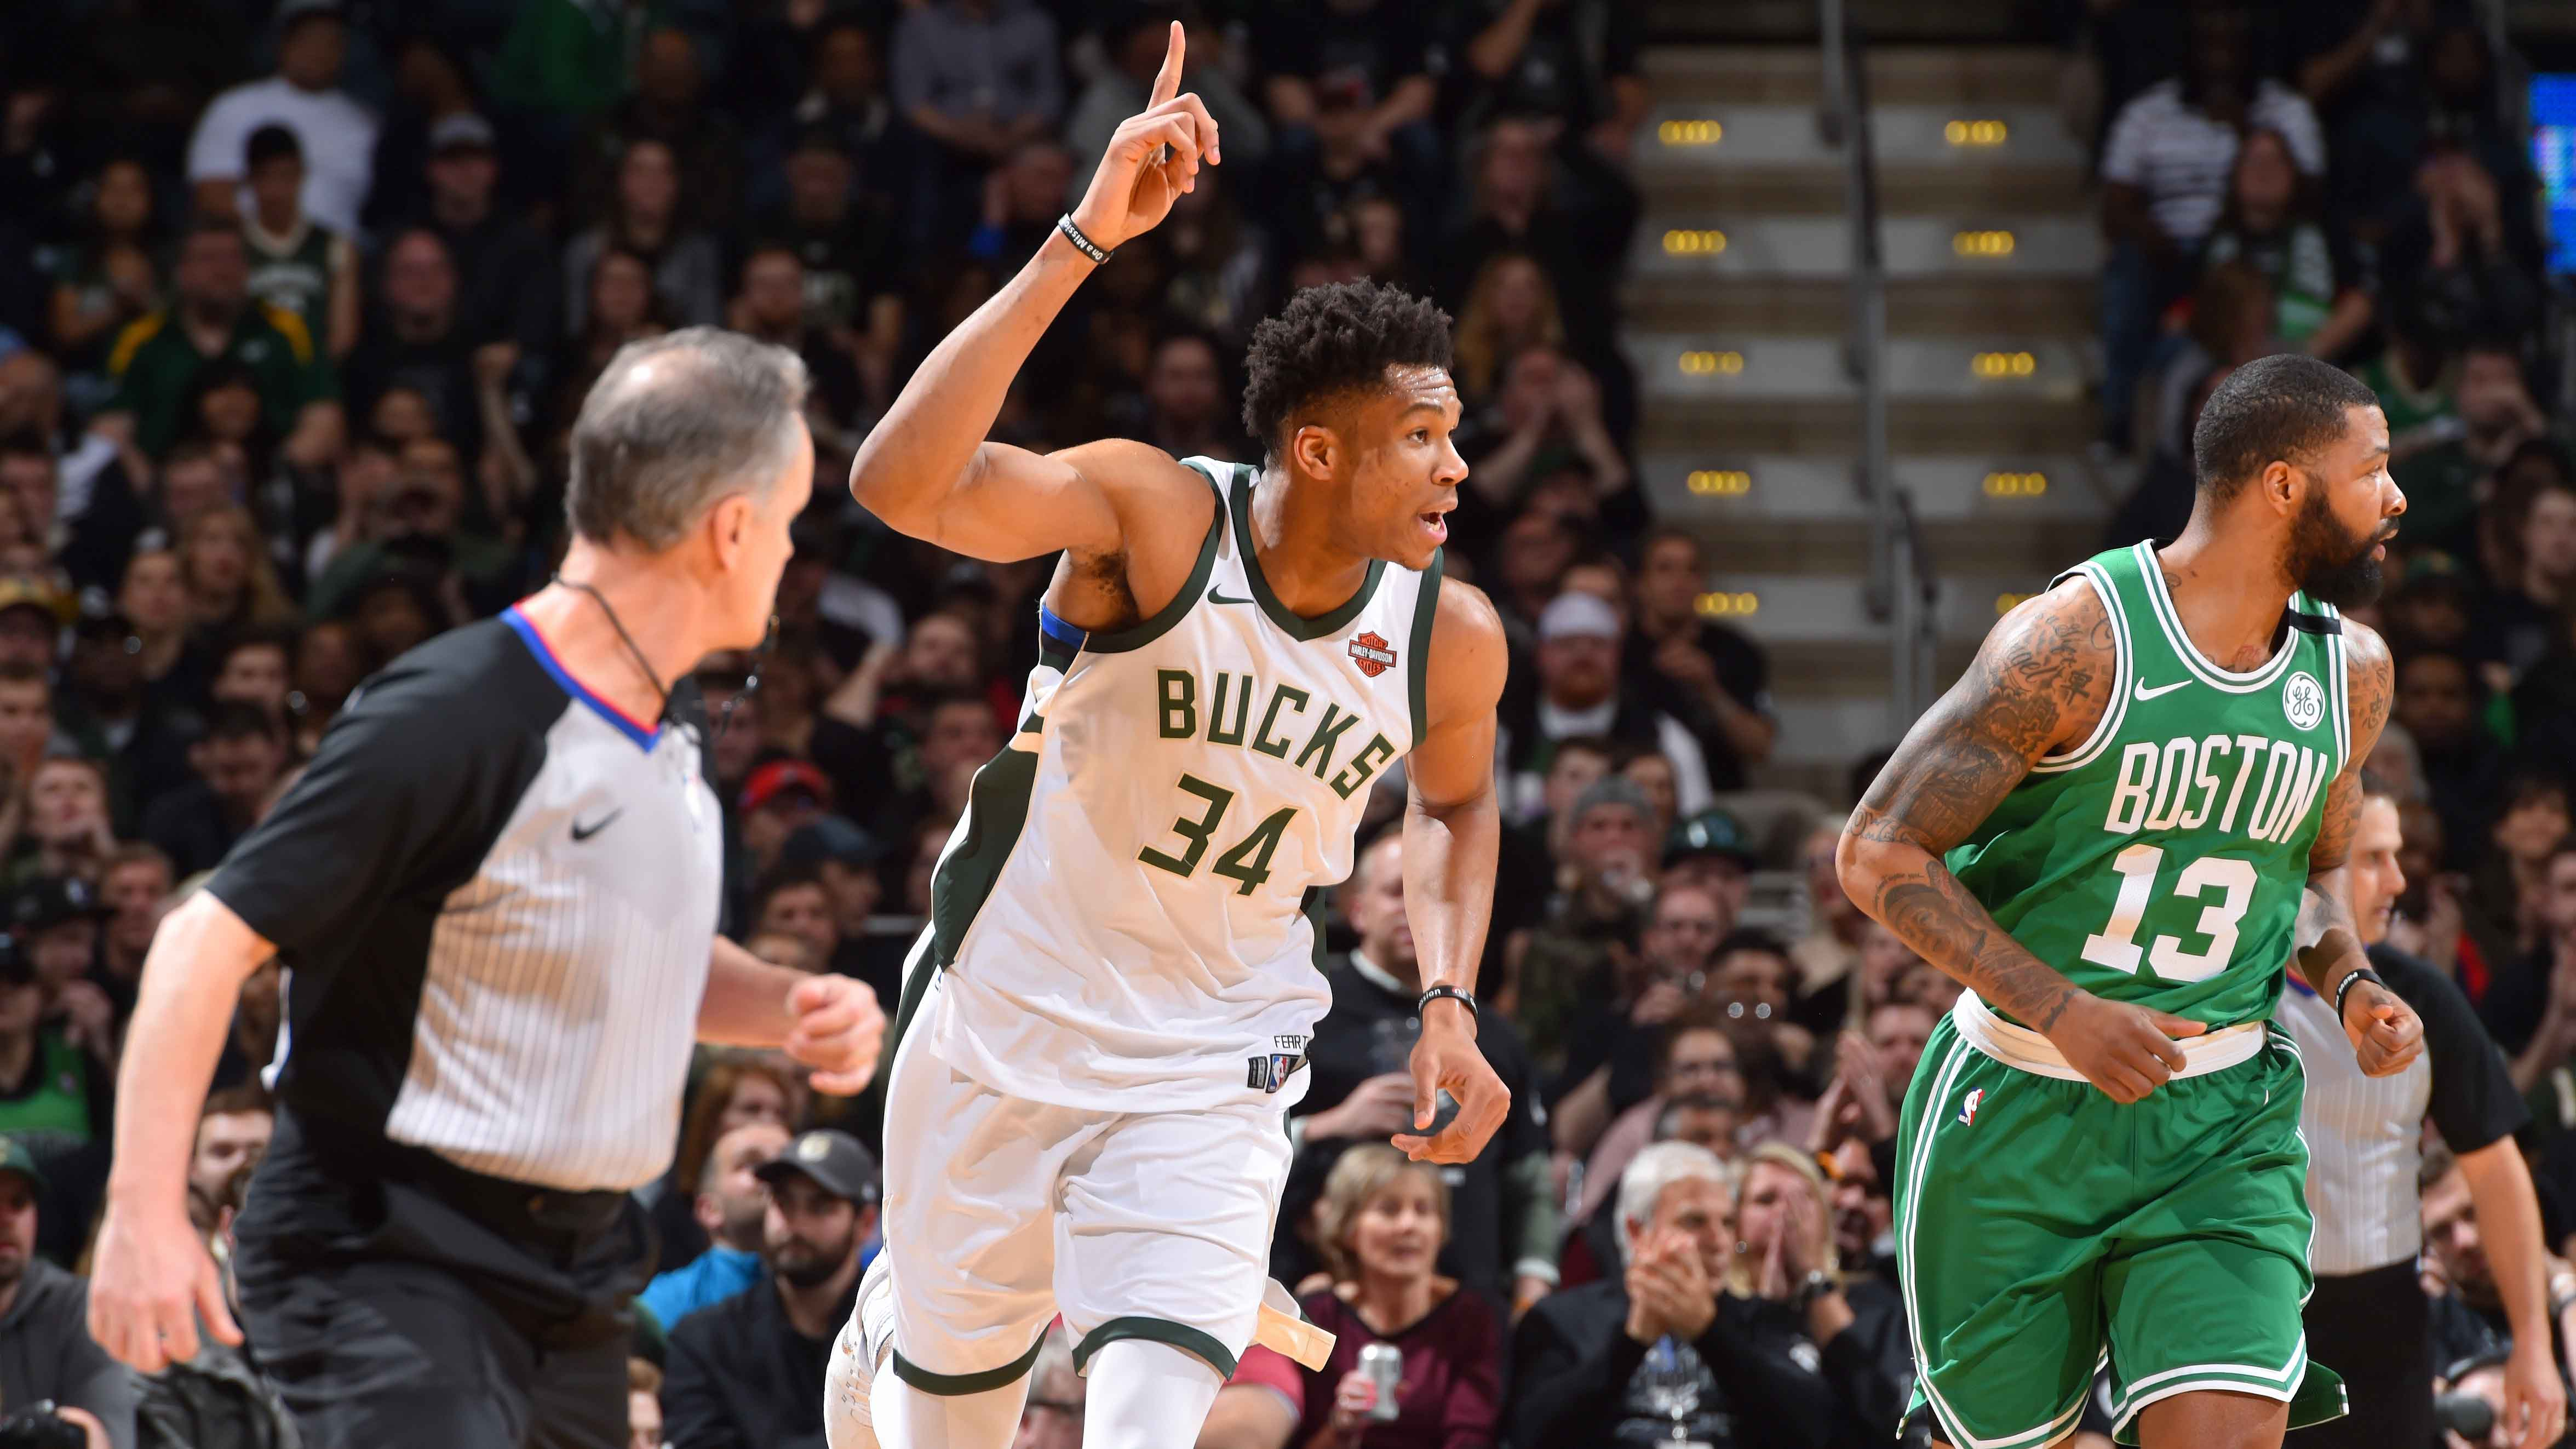 GAME 6 RECAP: Bucks 97, Celtics 86